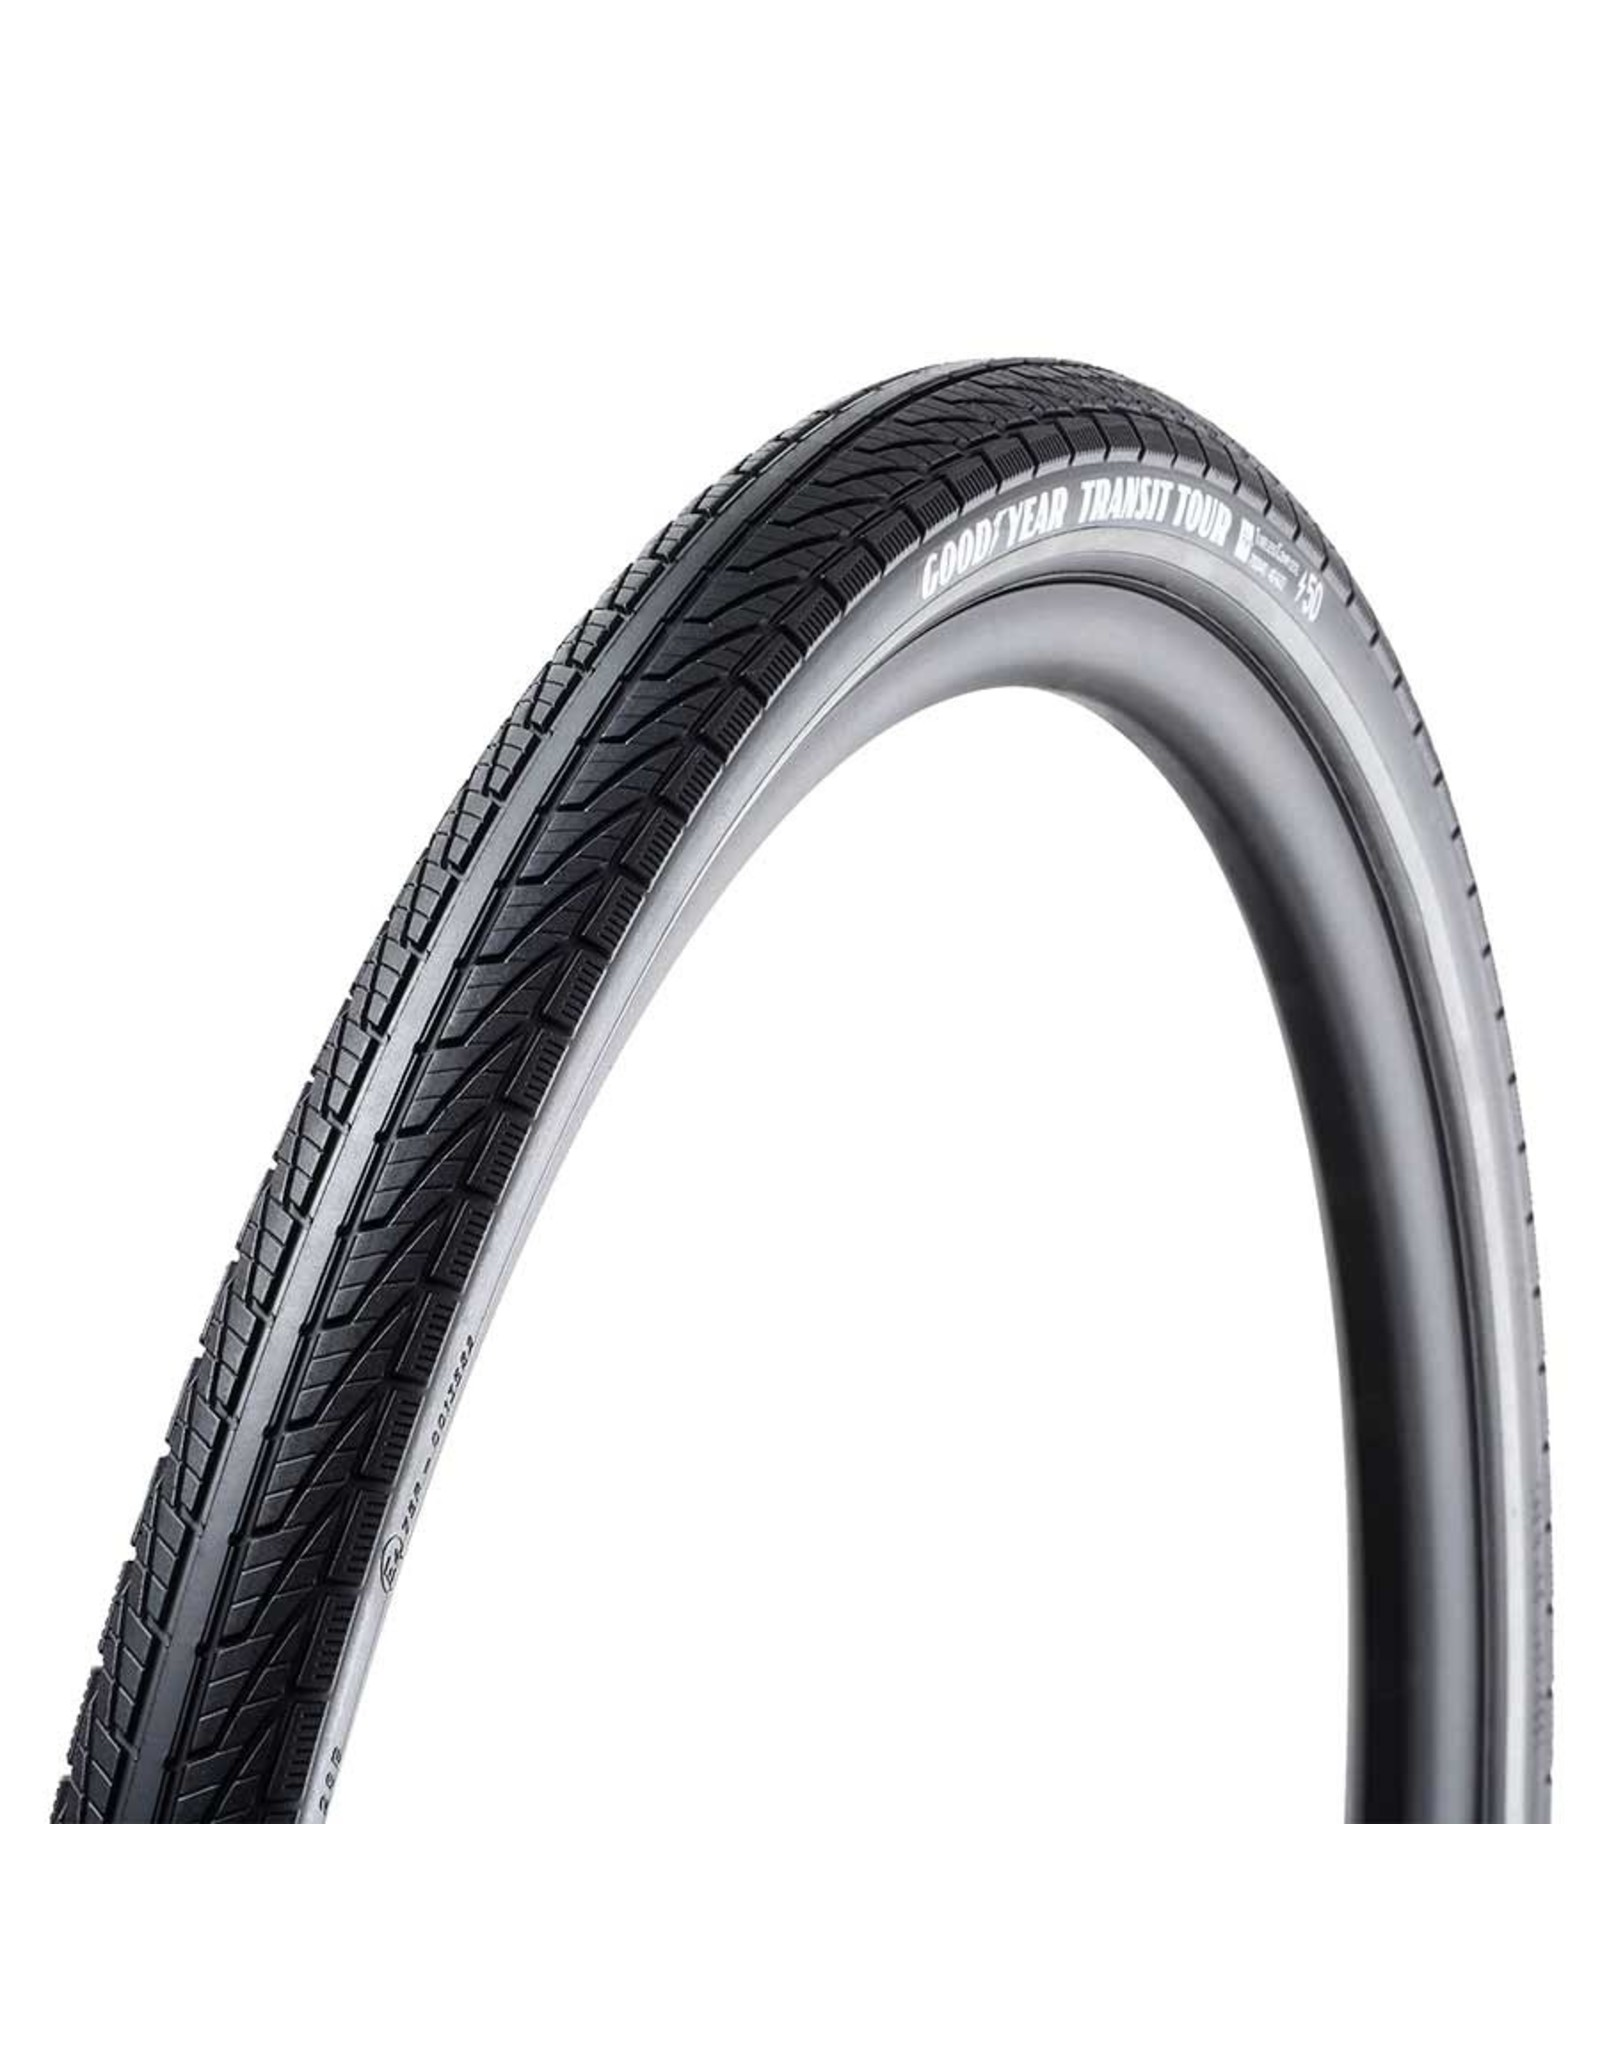 Goodyear Goodyear, Transit Tour, Tire, 700x40C, Wire, Clincher, Dynamic:Silica4, S3: Shell, 60TPI, Black